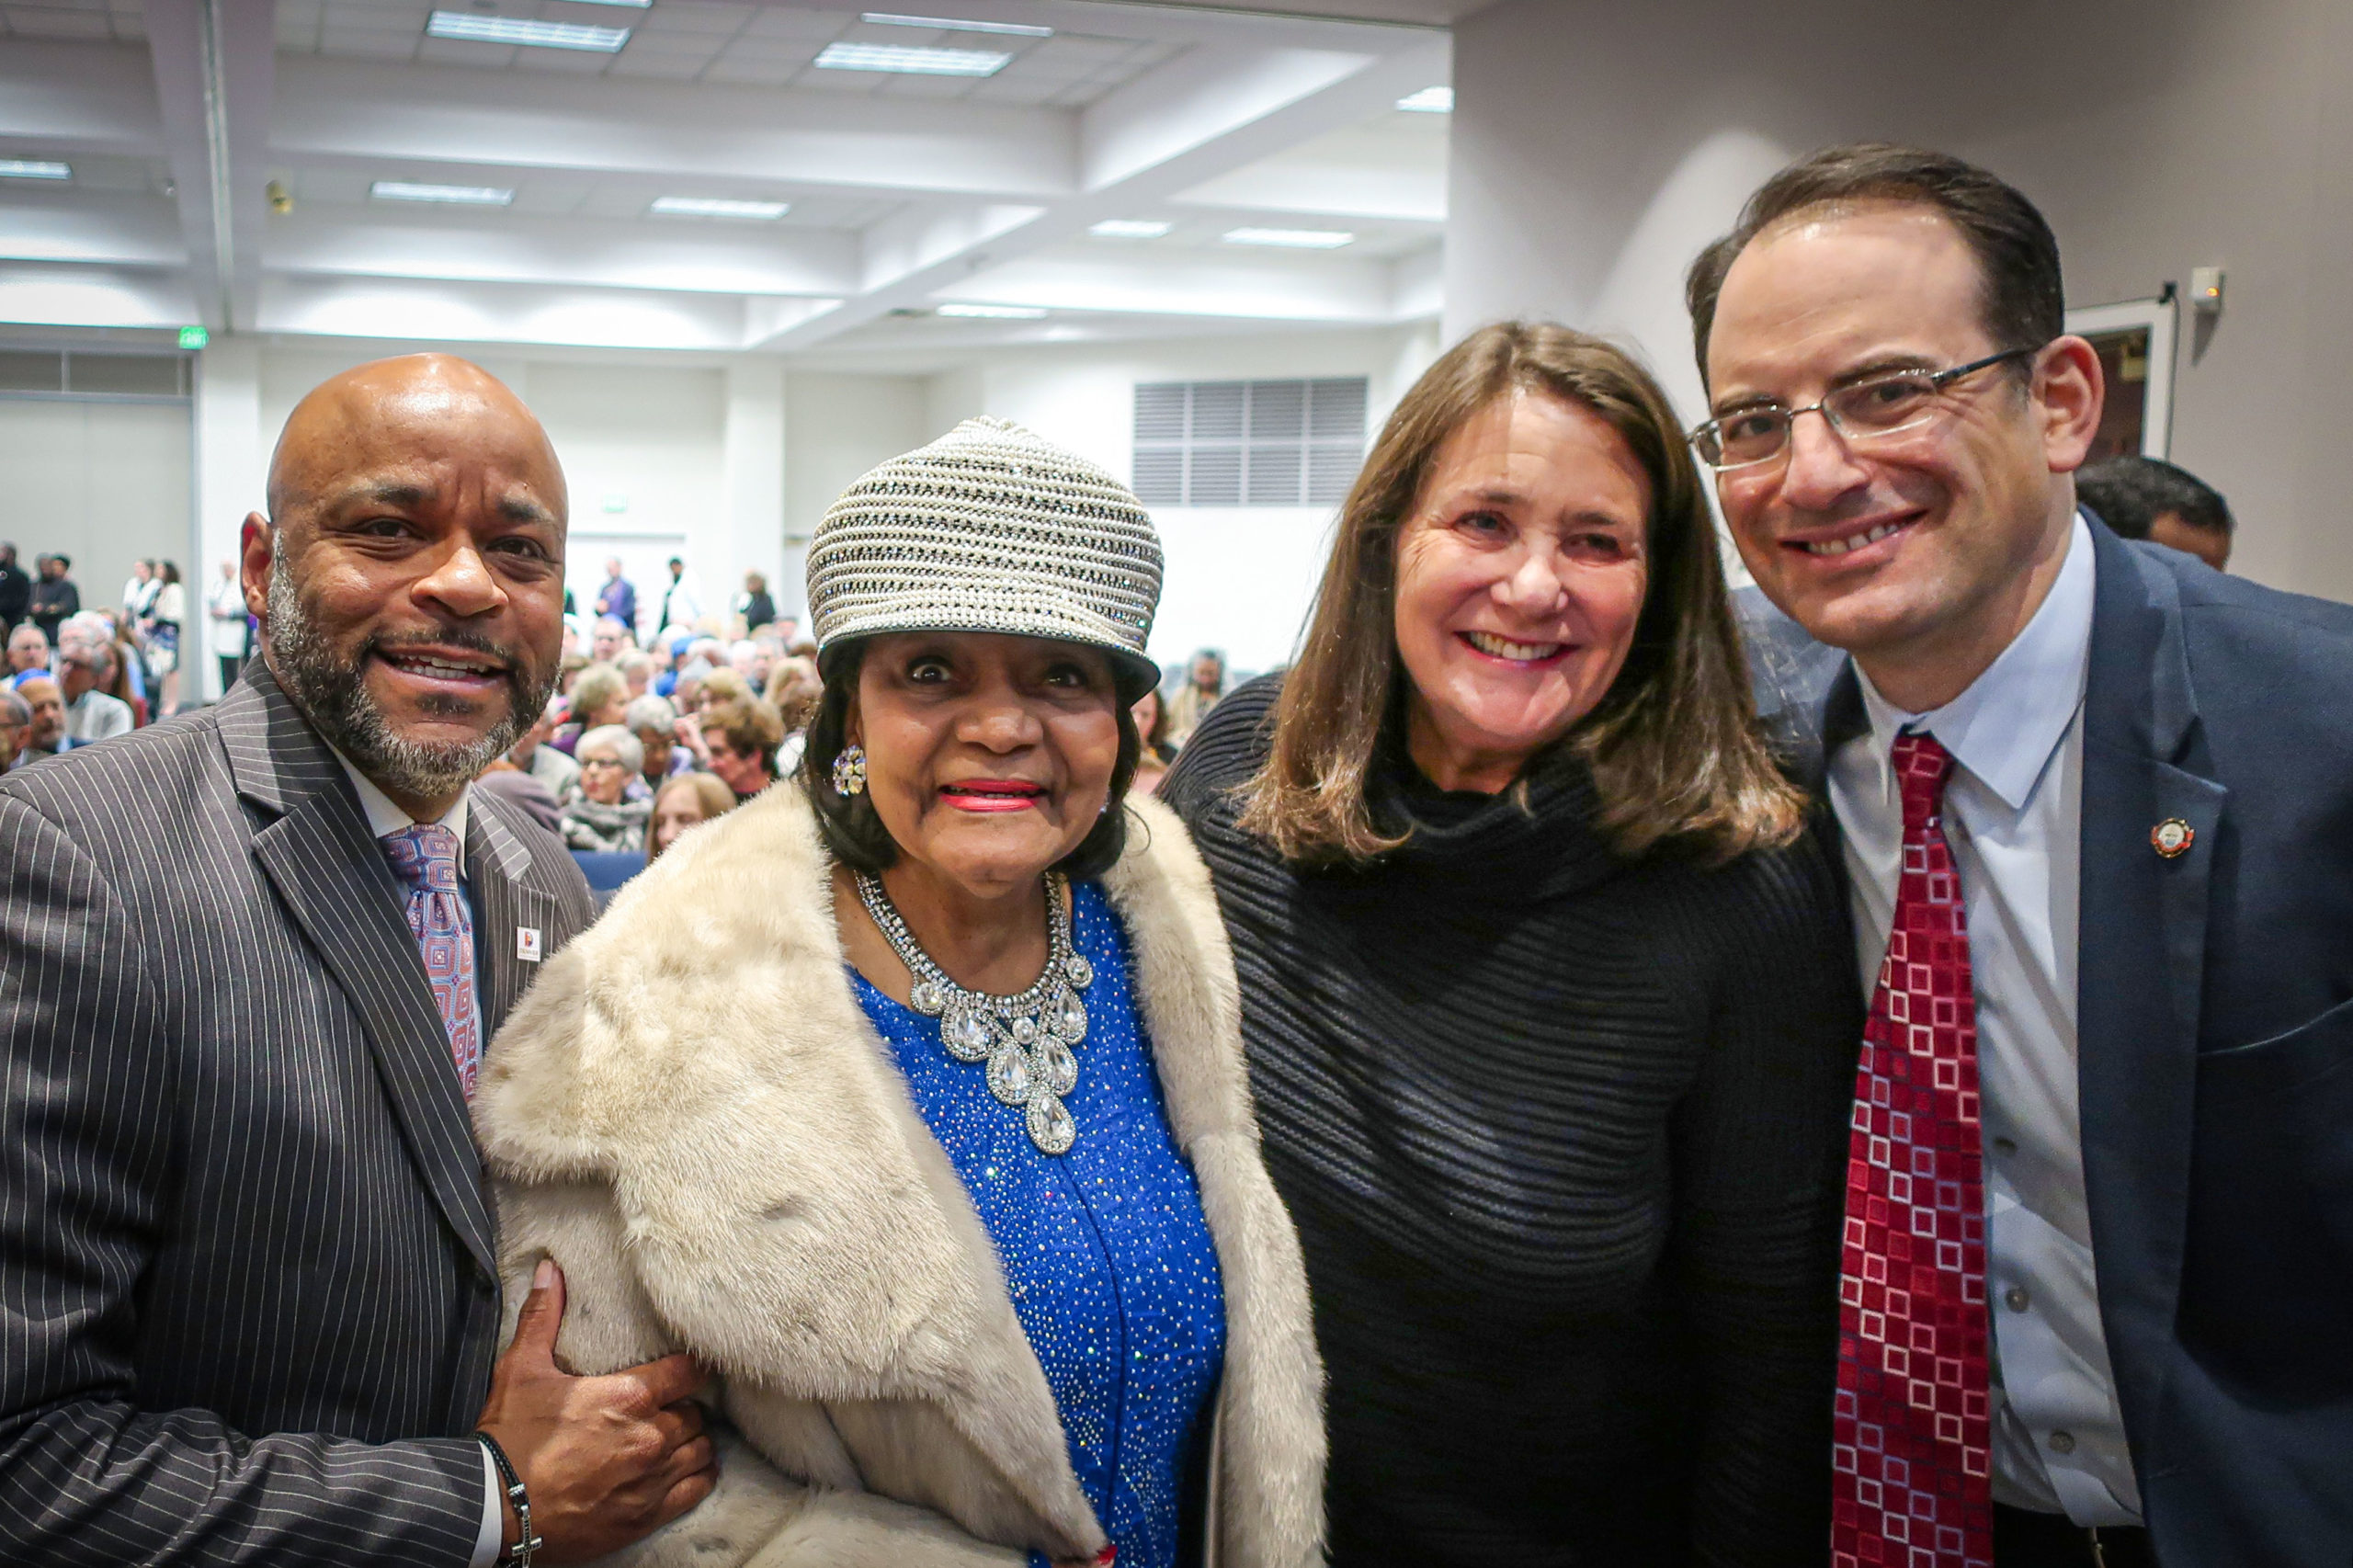 From left, Denver Mayor Michael Hancock, Syl Morgan-Smith, Congresswoman Diana DeGette and Colorado Attorney General Phil Weiser were among those in attendance at a celebration of Dr. Martin Luther King Jr. at Temple Sinai in Denver on January 19, 2020.